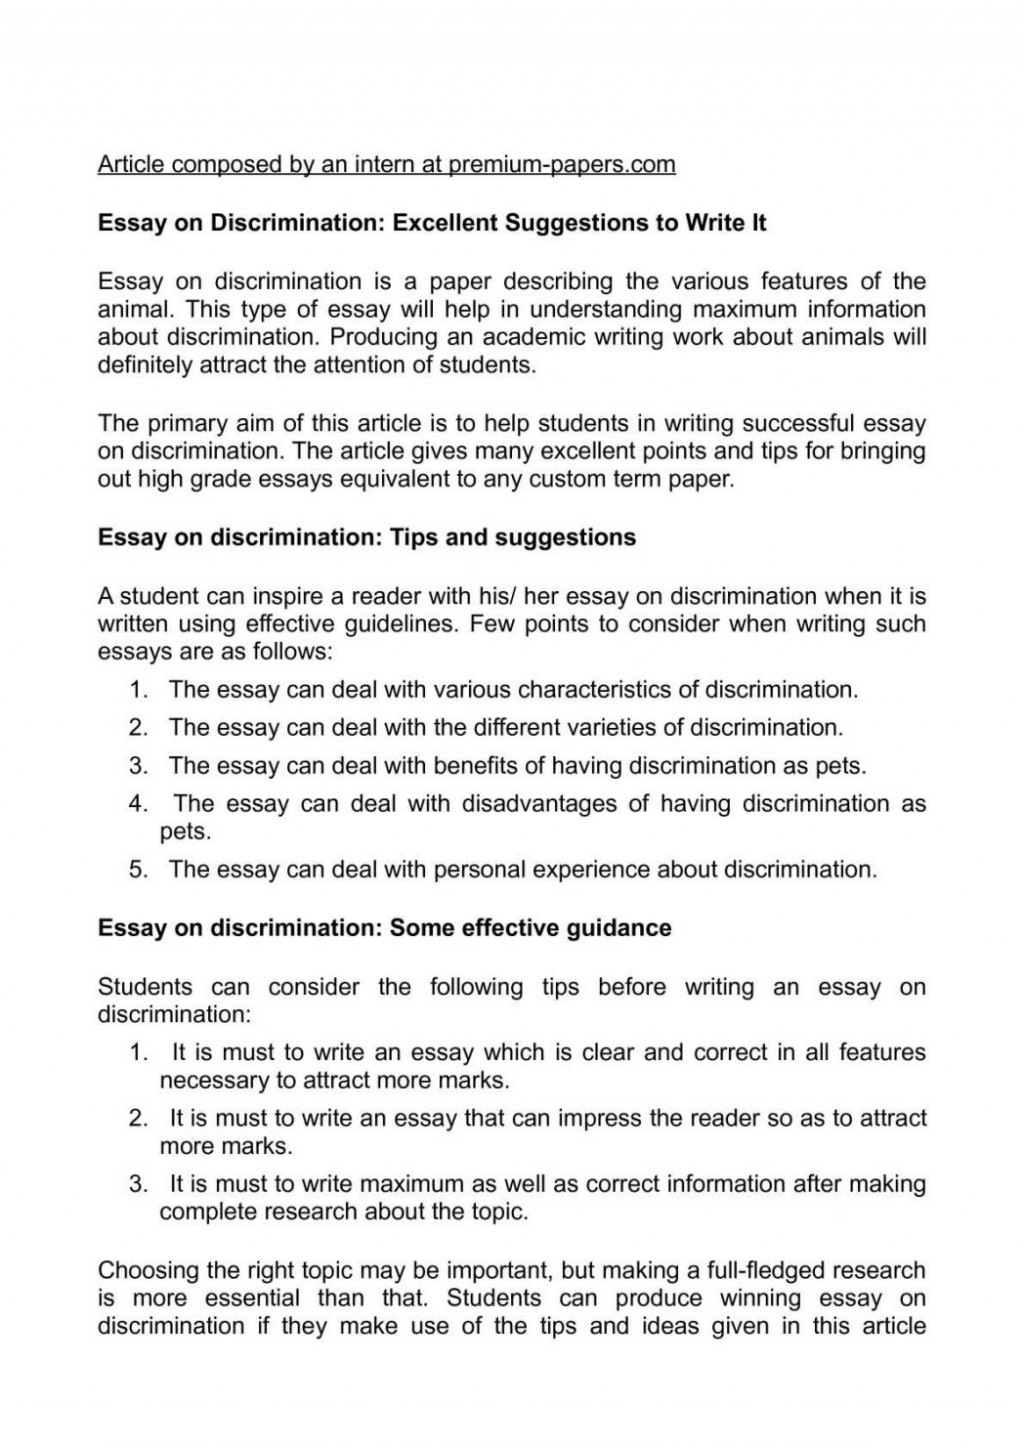 010 Essay On Discrimination Excellent Suggestions To Write It How An Prejudice And Racial Paper 1048x1483 Wonderful Kill A Mockingbird Title Theme Topics Large